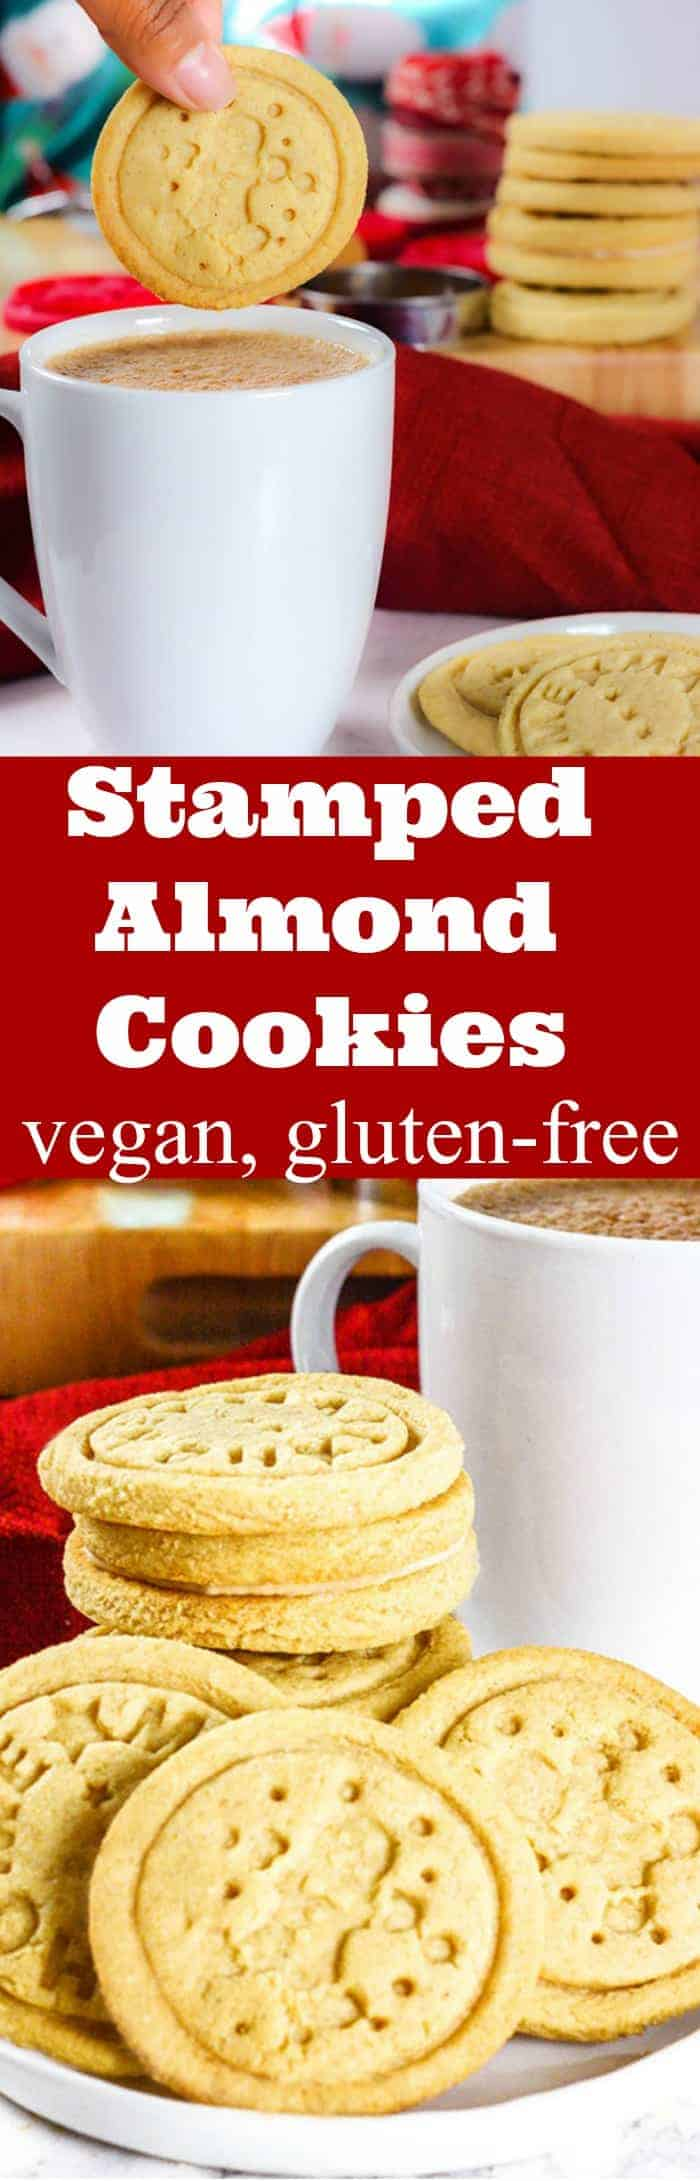 Stamped Almond Cookies